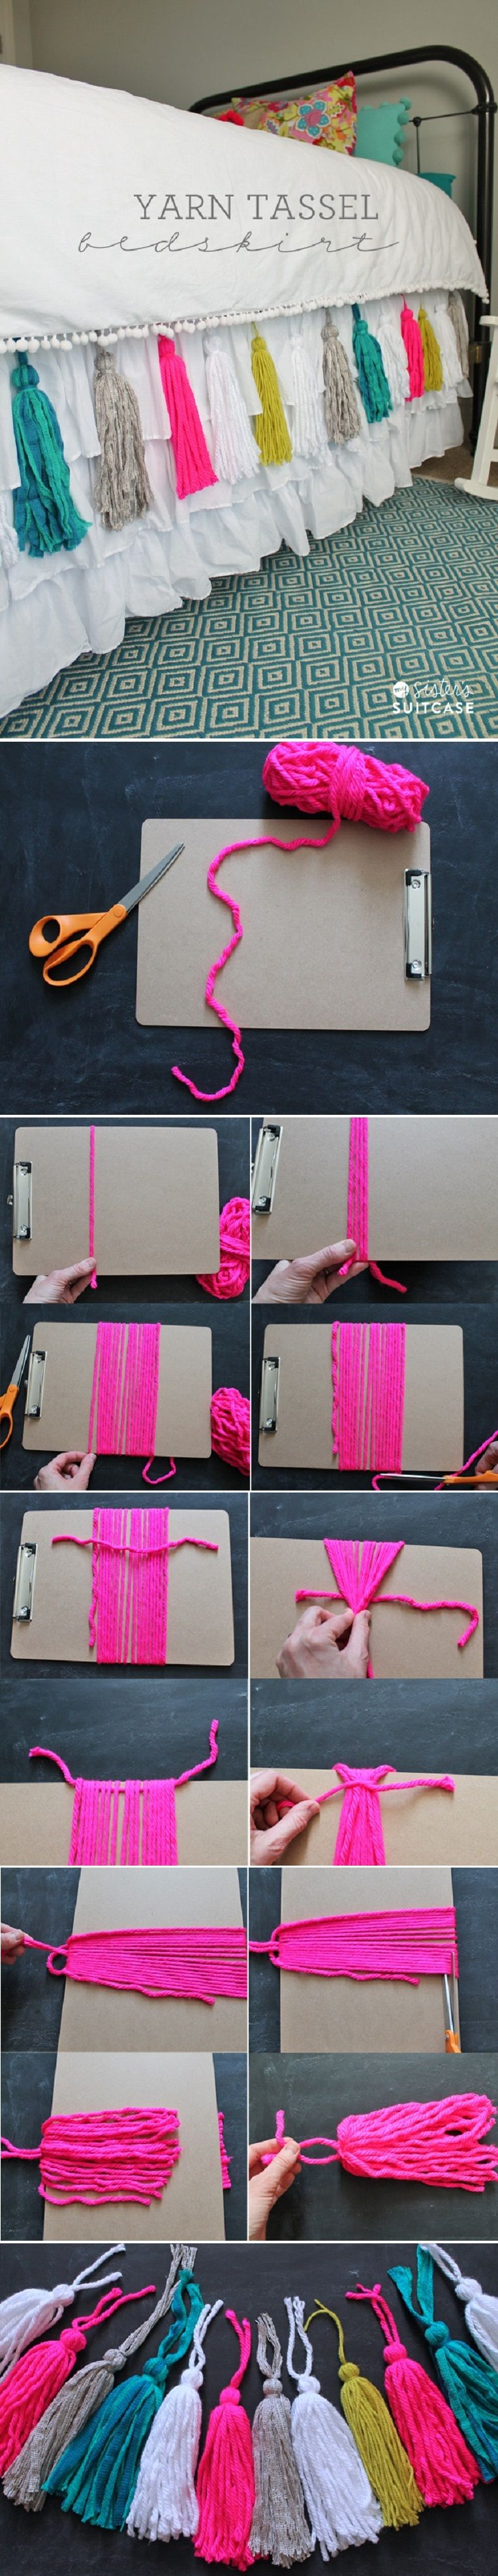 Attach some simple yarn tassels to your bedskirt - 14 Simple DIY Hacks to Make Your Home Look More Expensive | GleamItUp